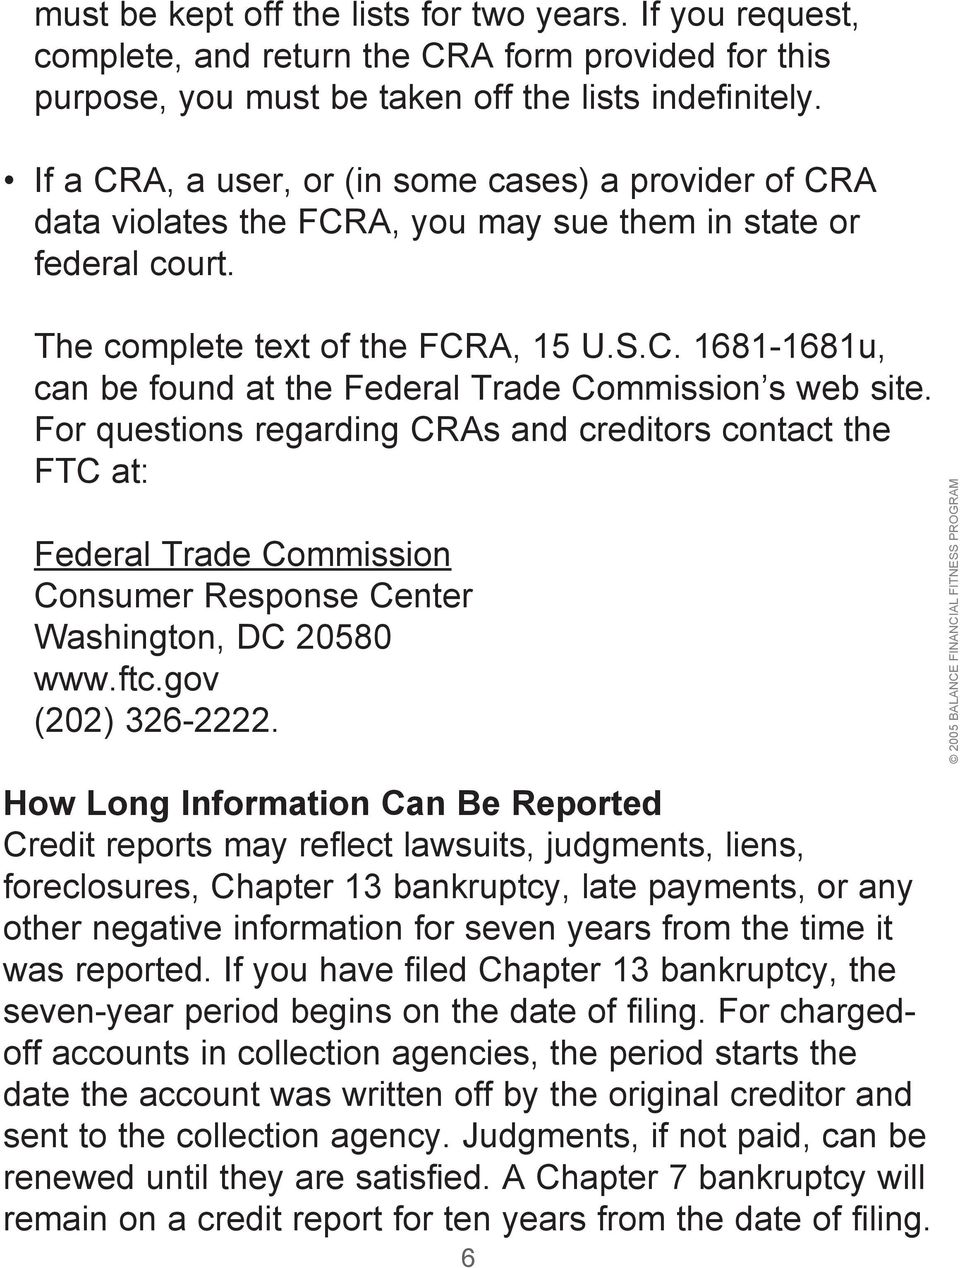 For questions regarding CRAs and creditors contact the FTC at: Federal Trade Commission Consumer Response Center Washington, DC 20580 www.ftc.gov (202) 326-2222.